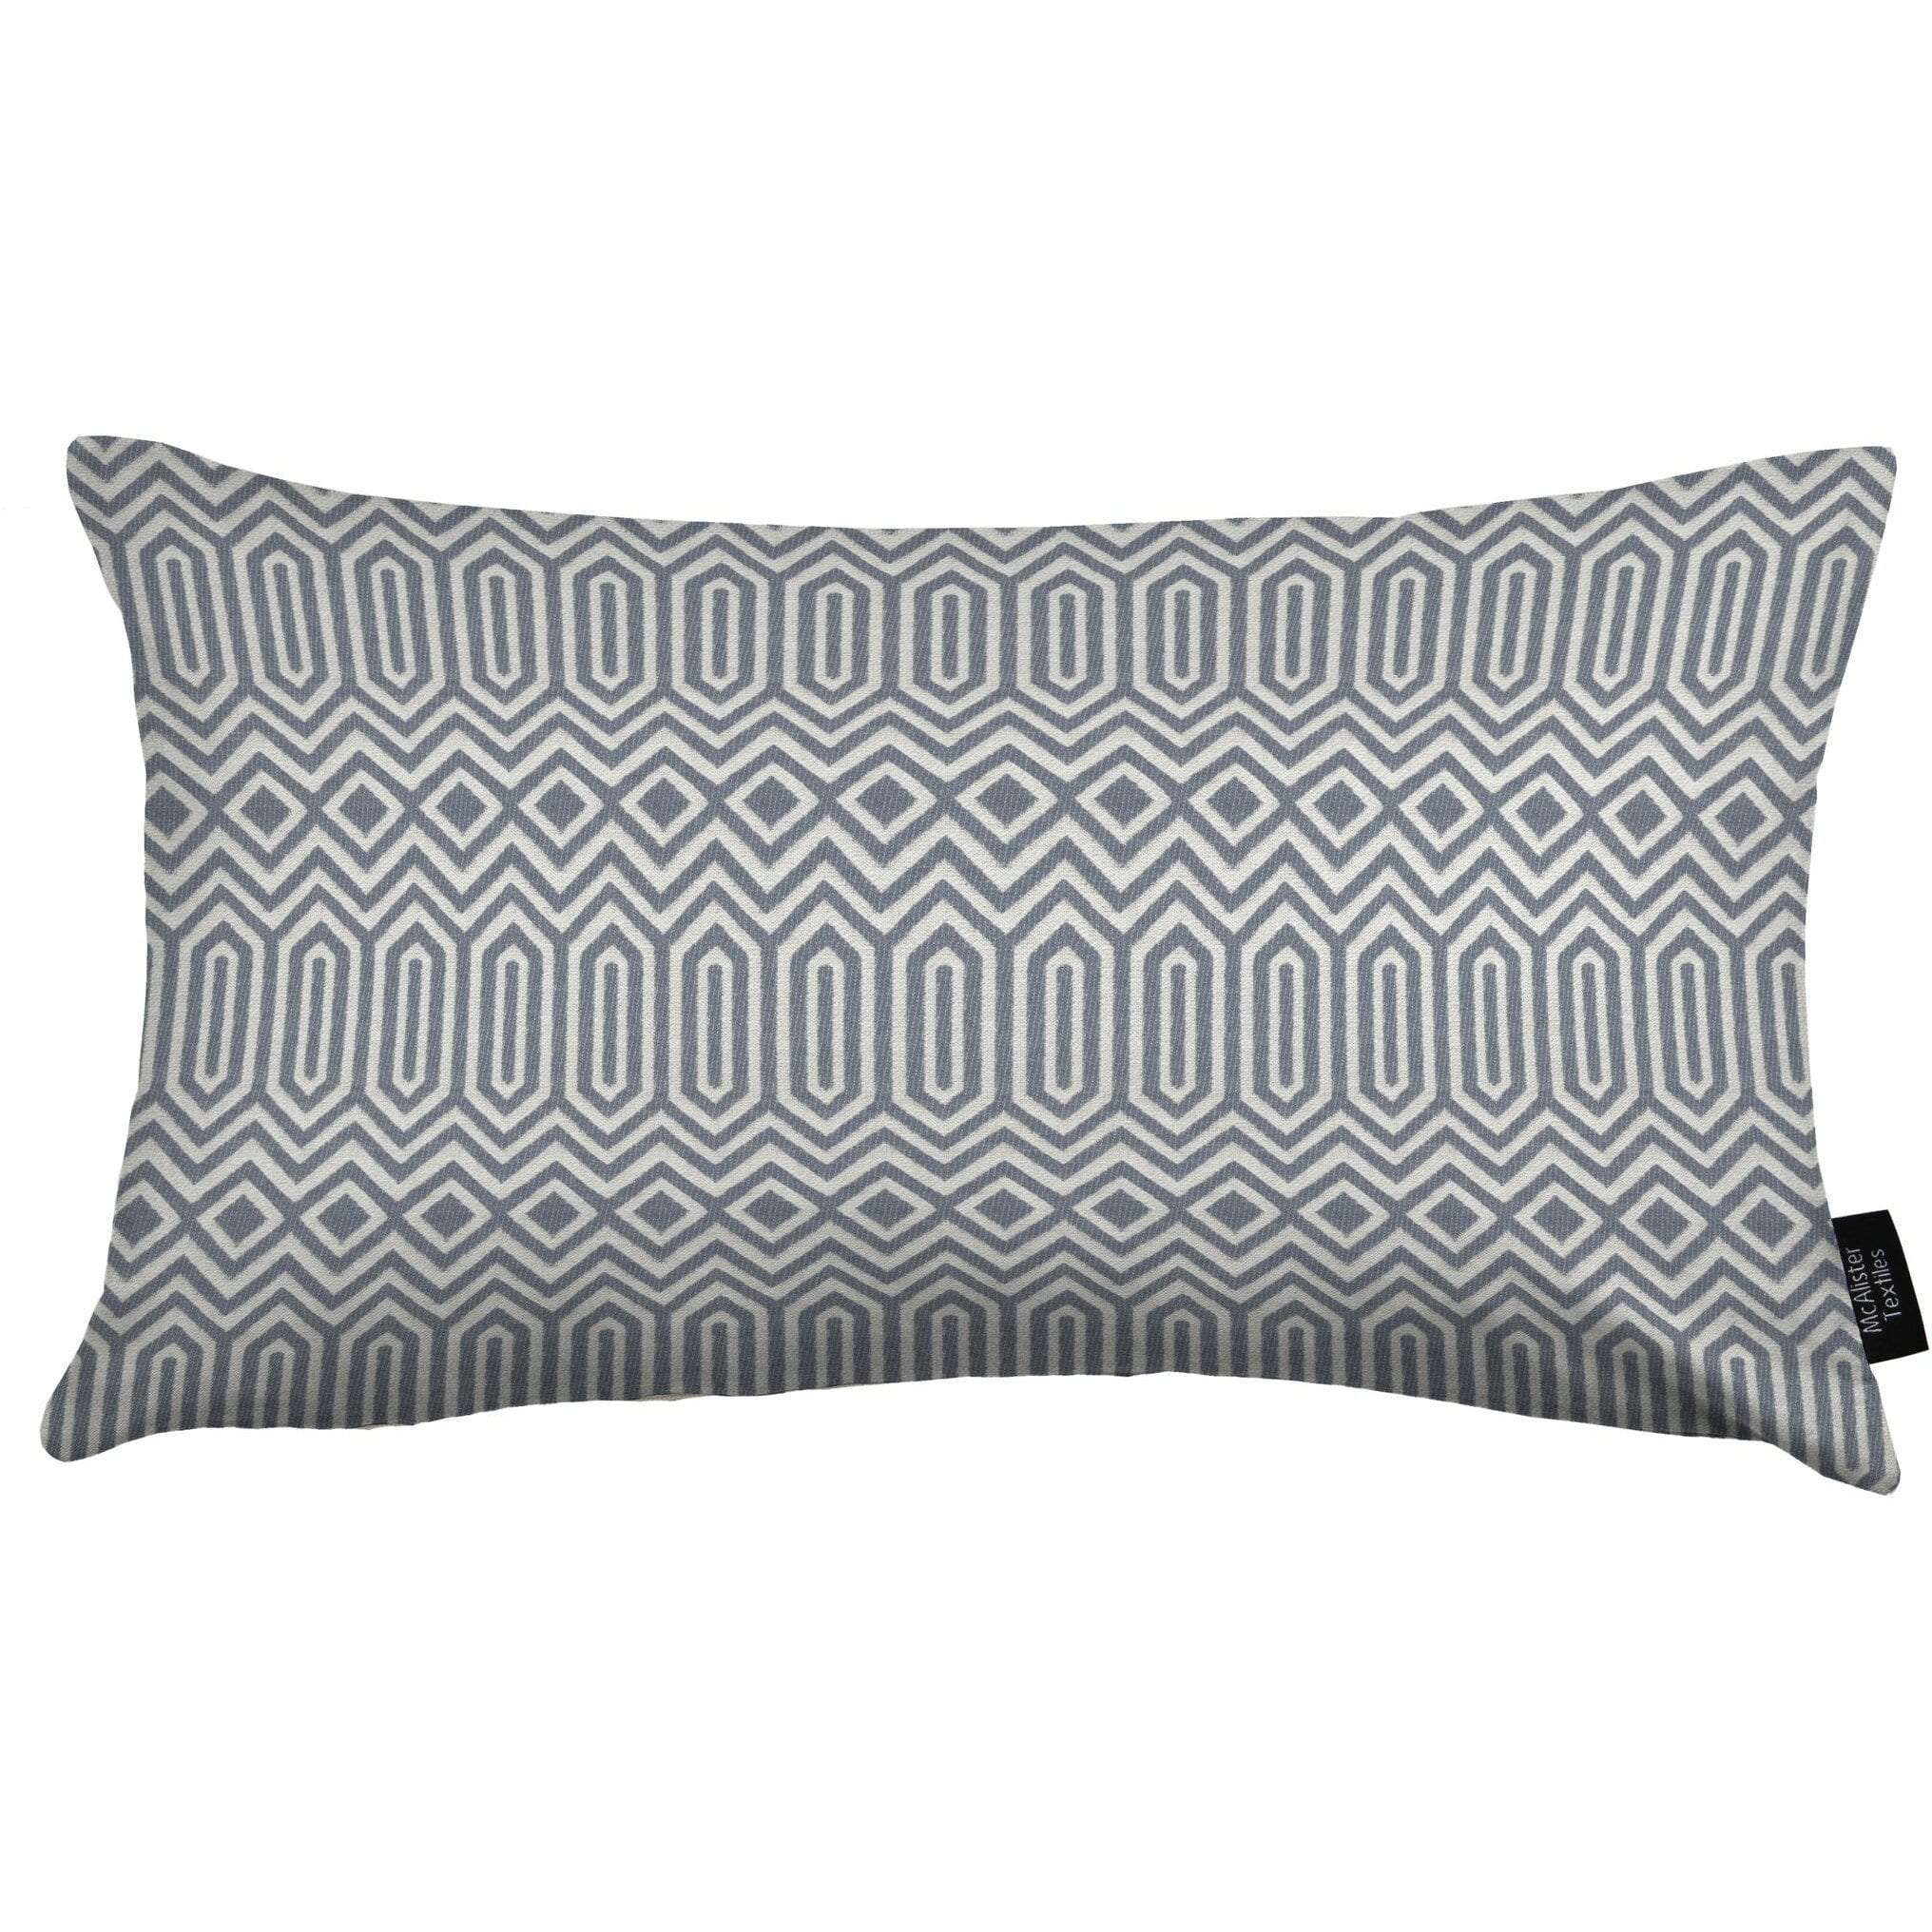 McAlister Textiles Colorado Geometric Navy Blue Pillow Pillow Cover Only 50cm x 30cm